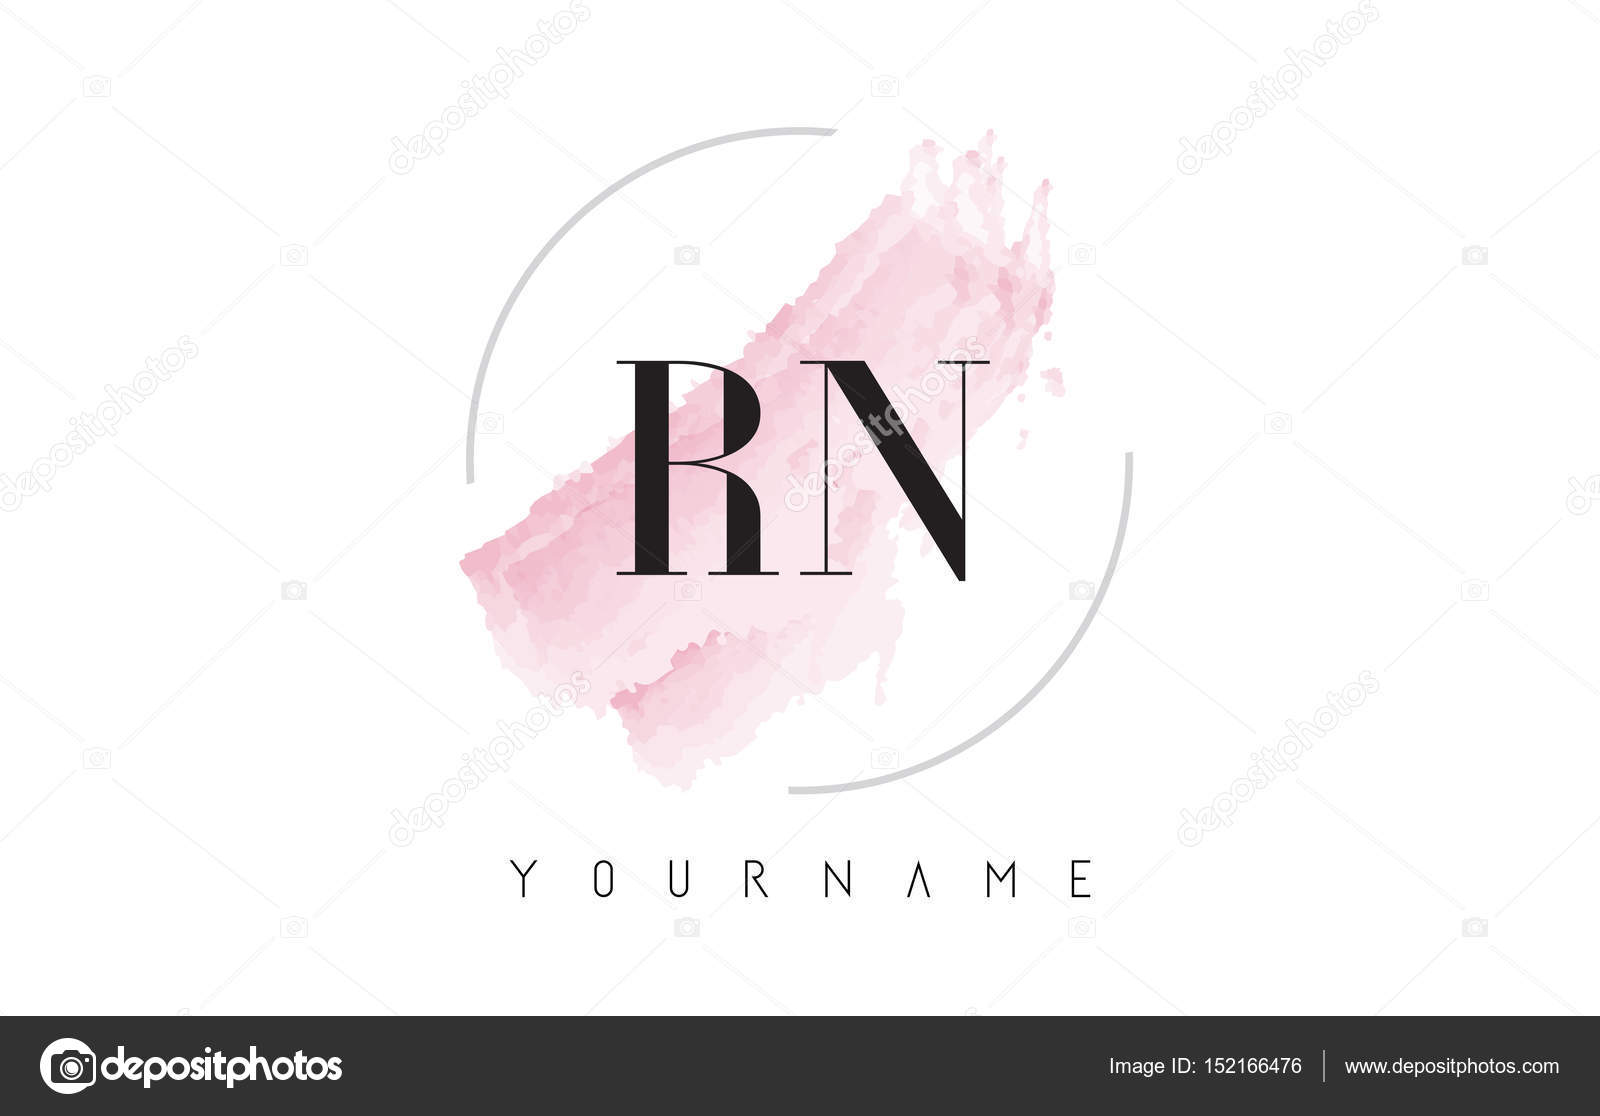 Rn r n watercolor letter logo design with circular brush pattern rn r n watercolor letter logo design with circular brush pattern stock vector altavistaventures Gallery